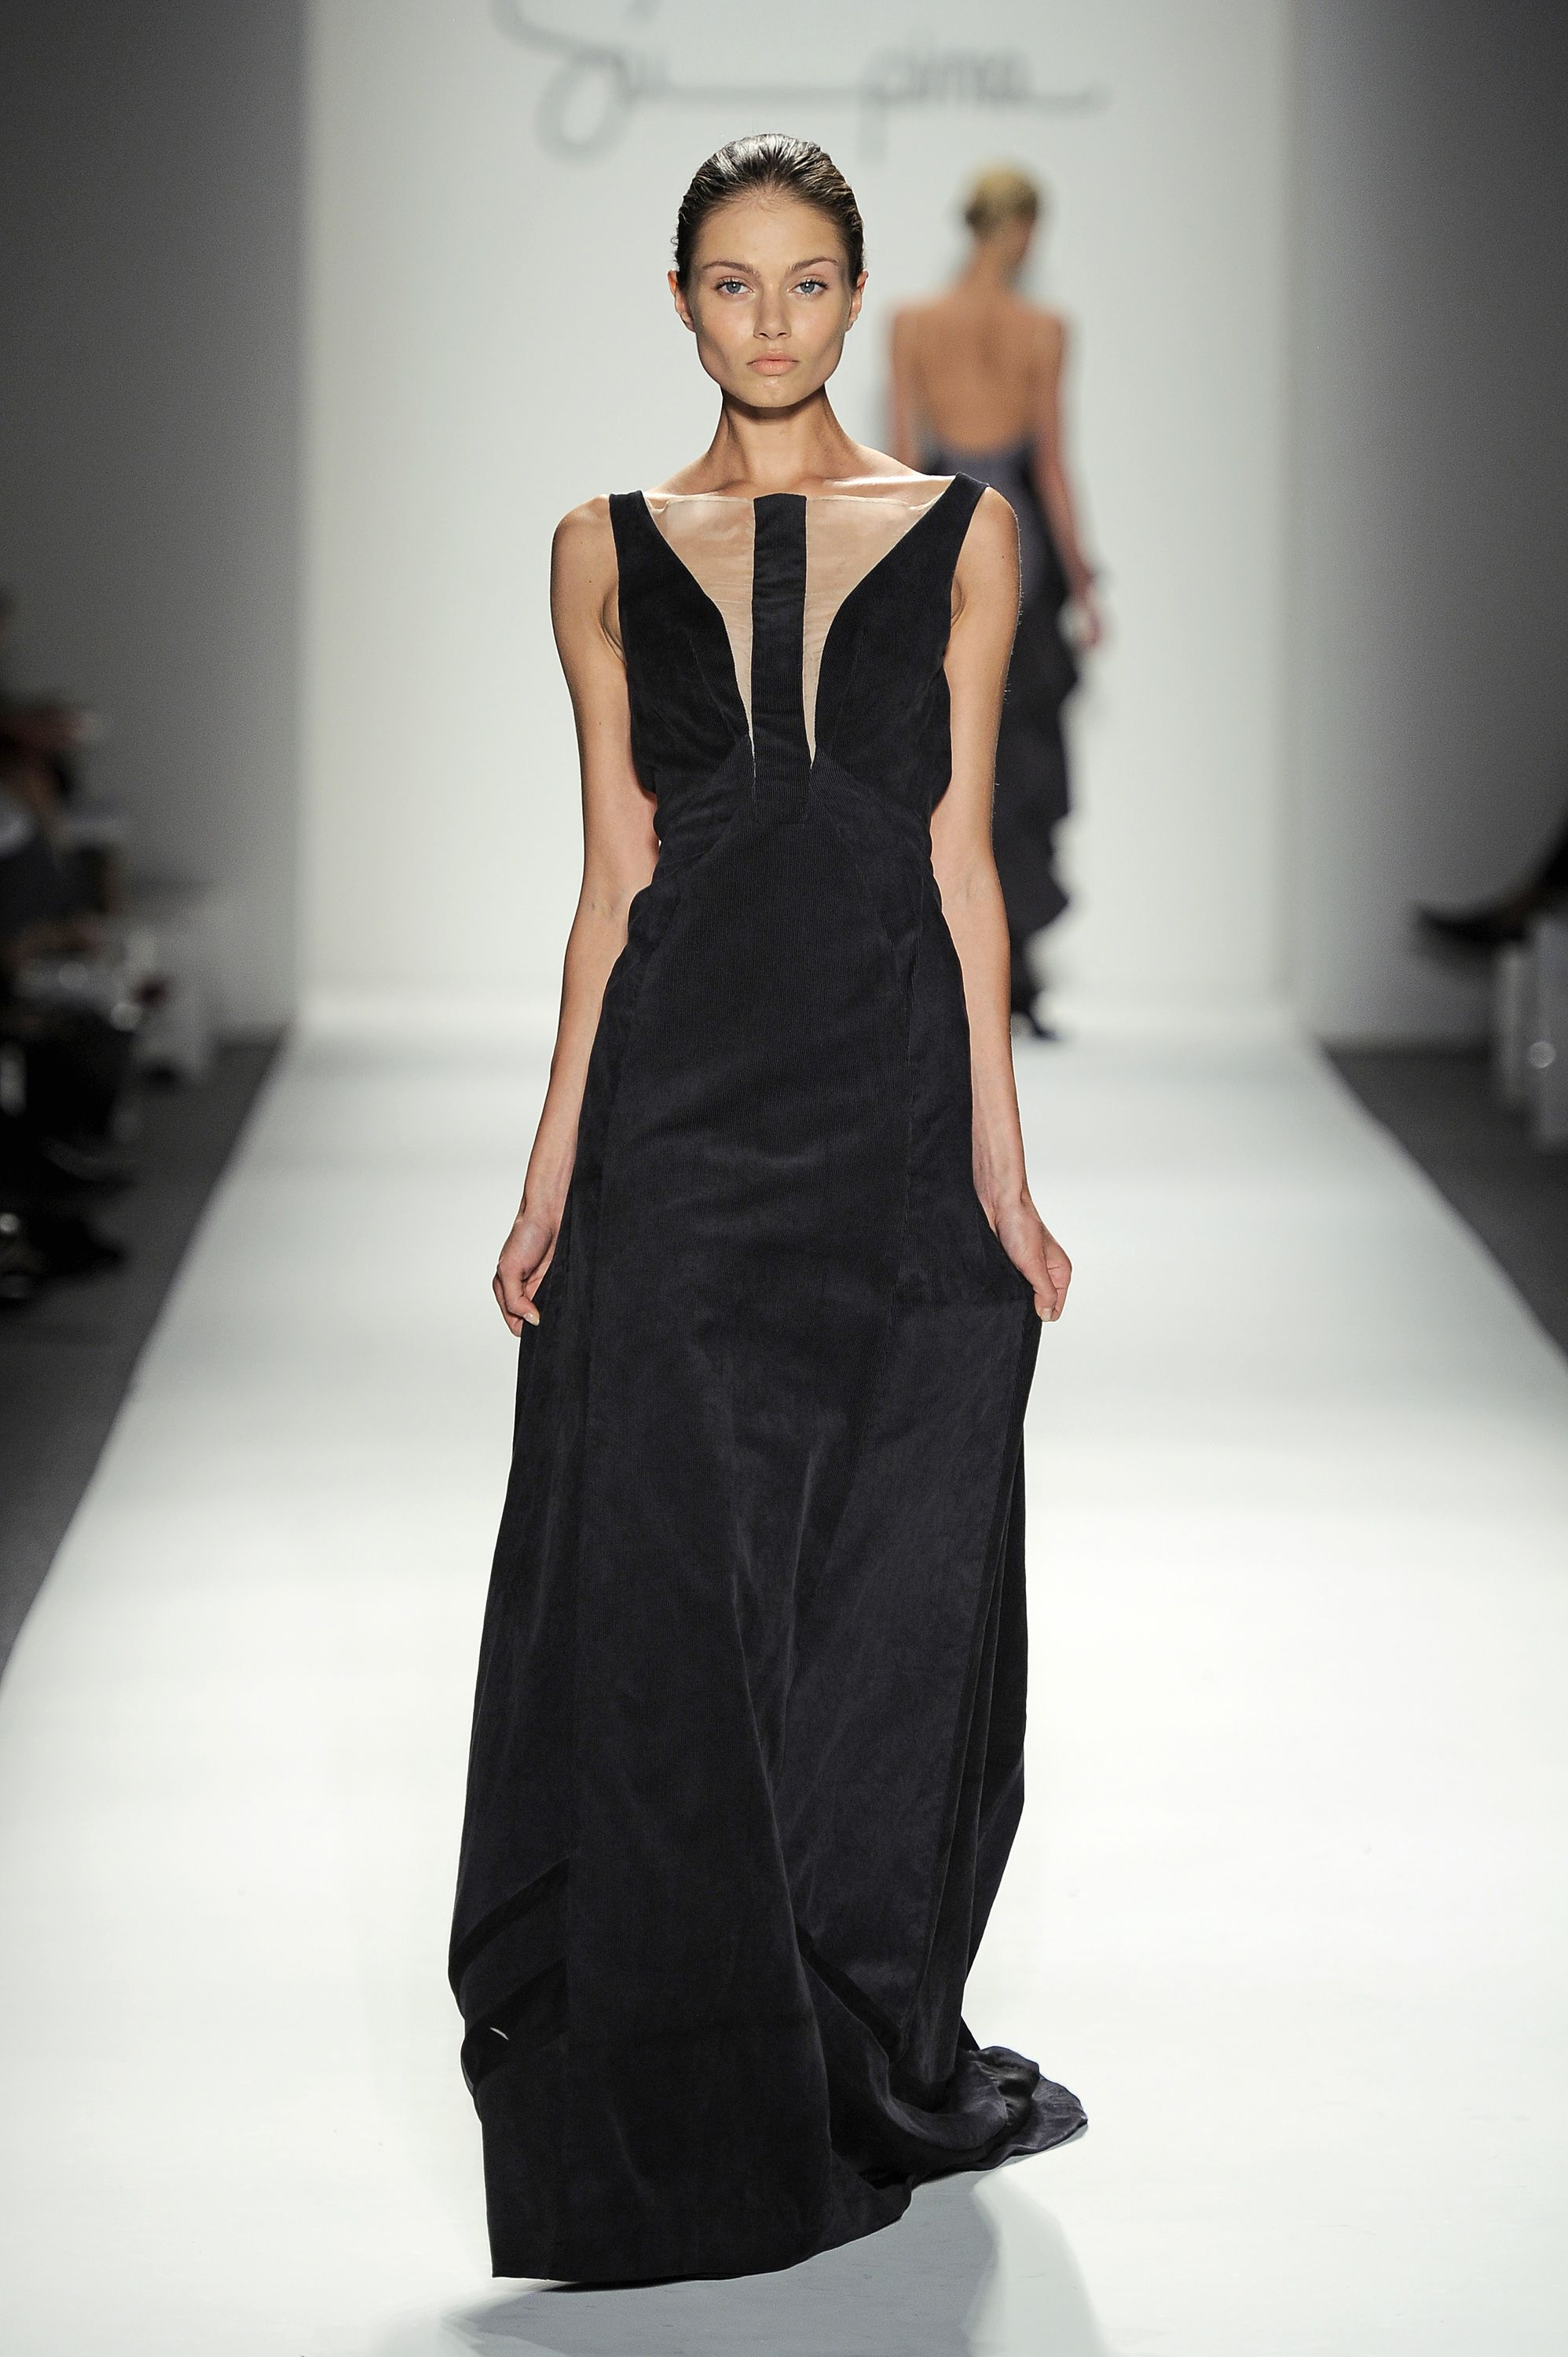 Jacqueline Siefert - Made with Supima Corduroy Fabric Fashion Week 2012